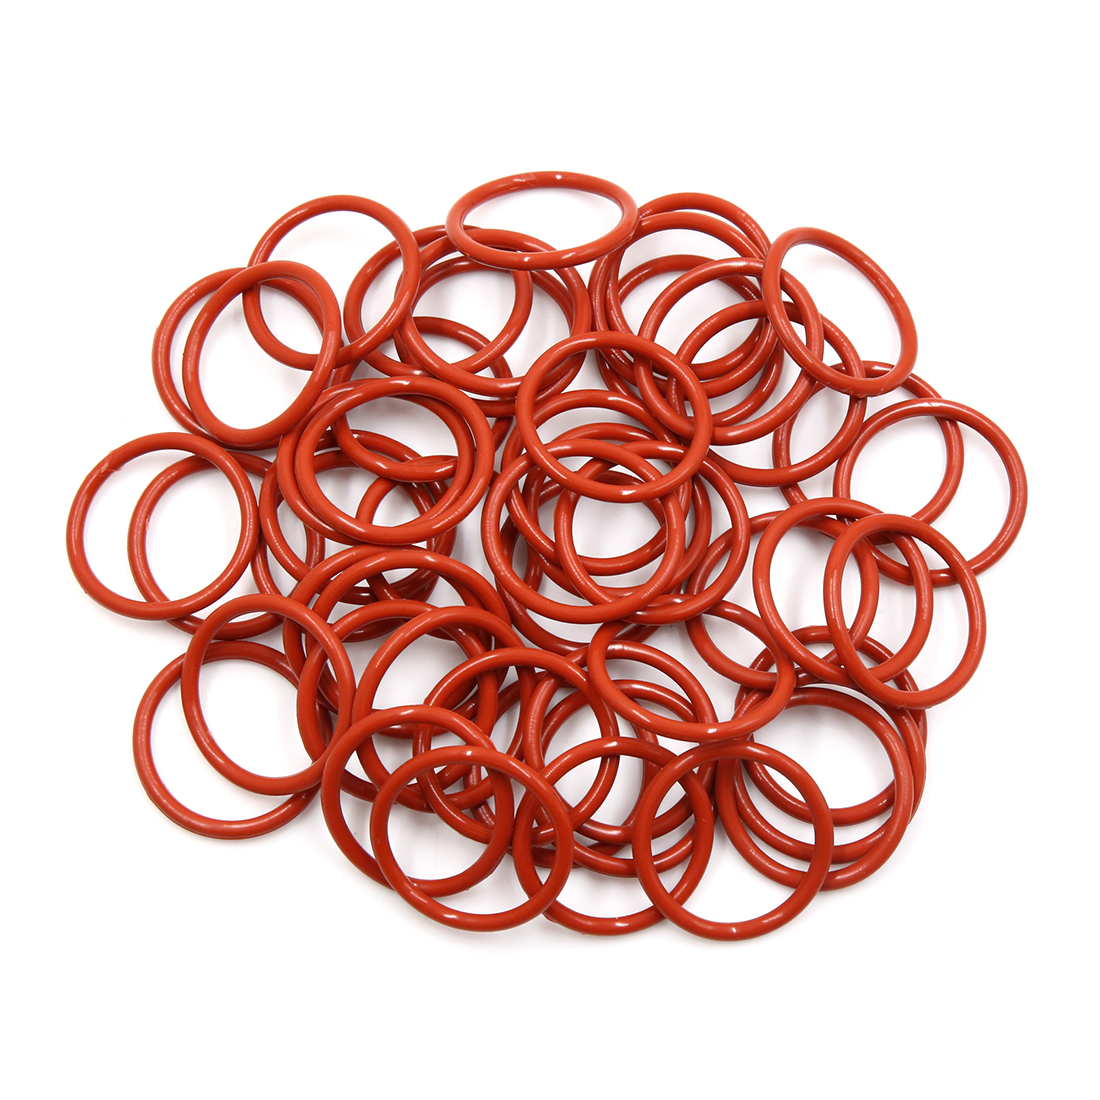 50pcs Brown Silicone Rubber O-Ring VMQ Seal Gasket Washer for Car 34mm x 3.1mm